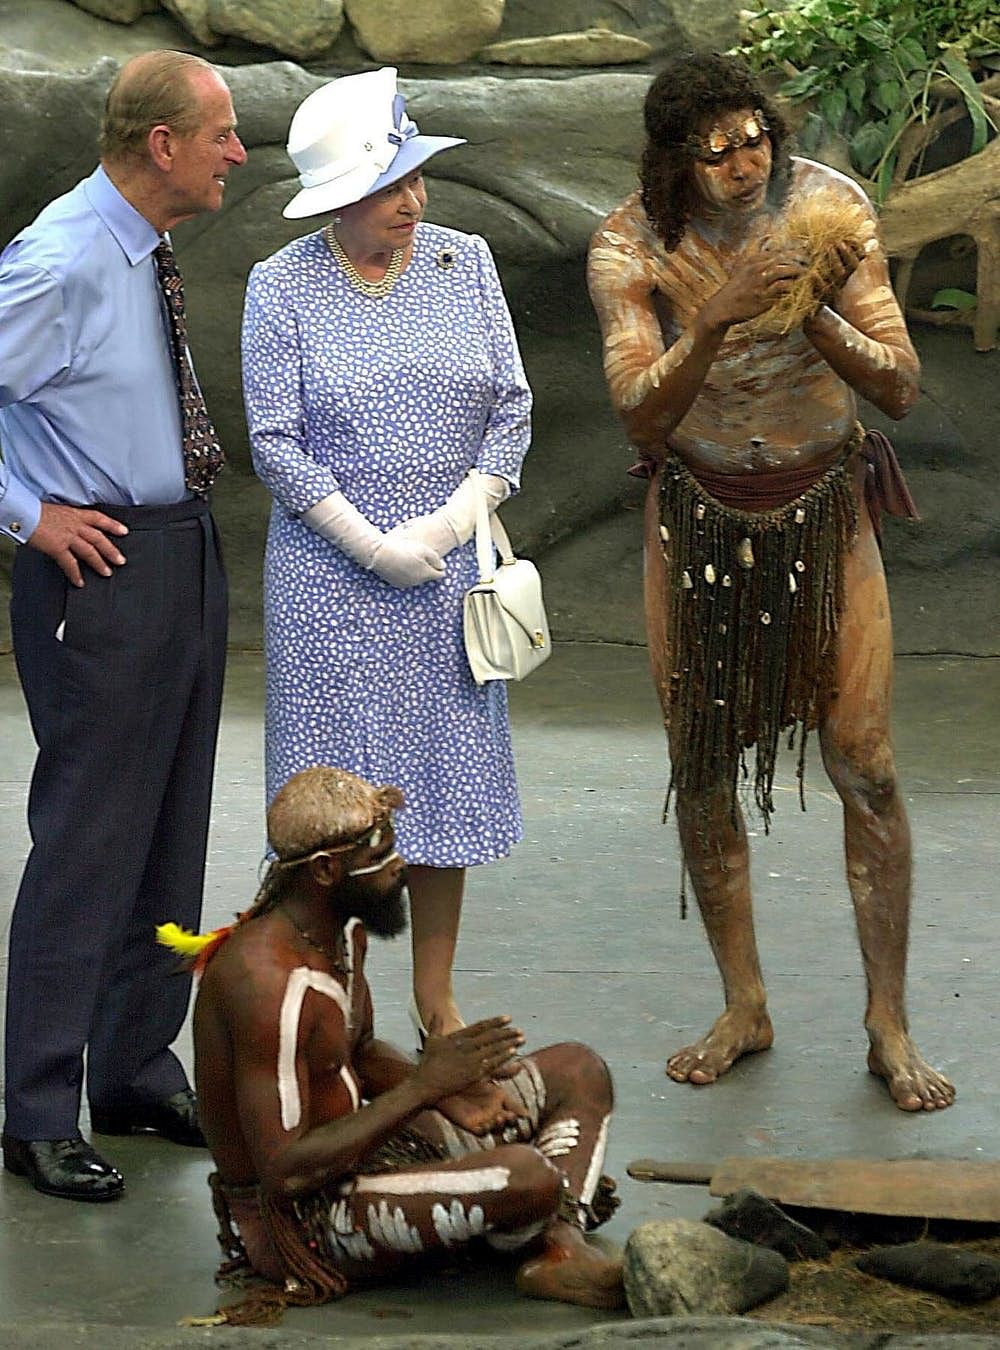 Queen Elizabeth II and Prince Philip watch as Warren Clements of the Tjapakai Aboriginal Dance Group makes fire by rubbing sticks in Cairns in March 2002.